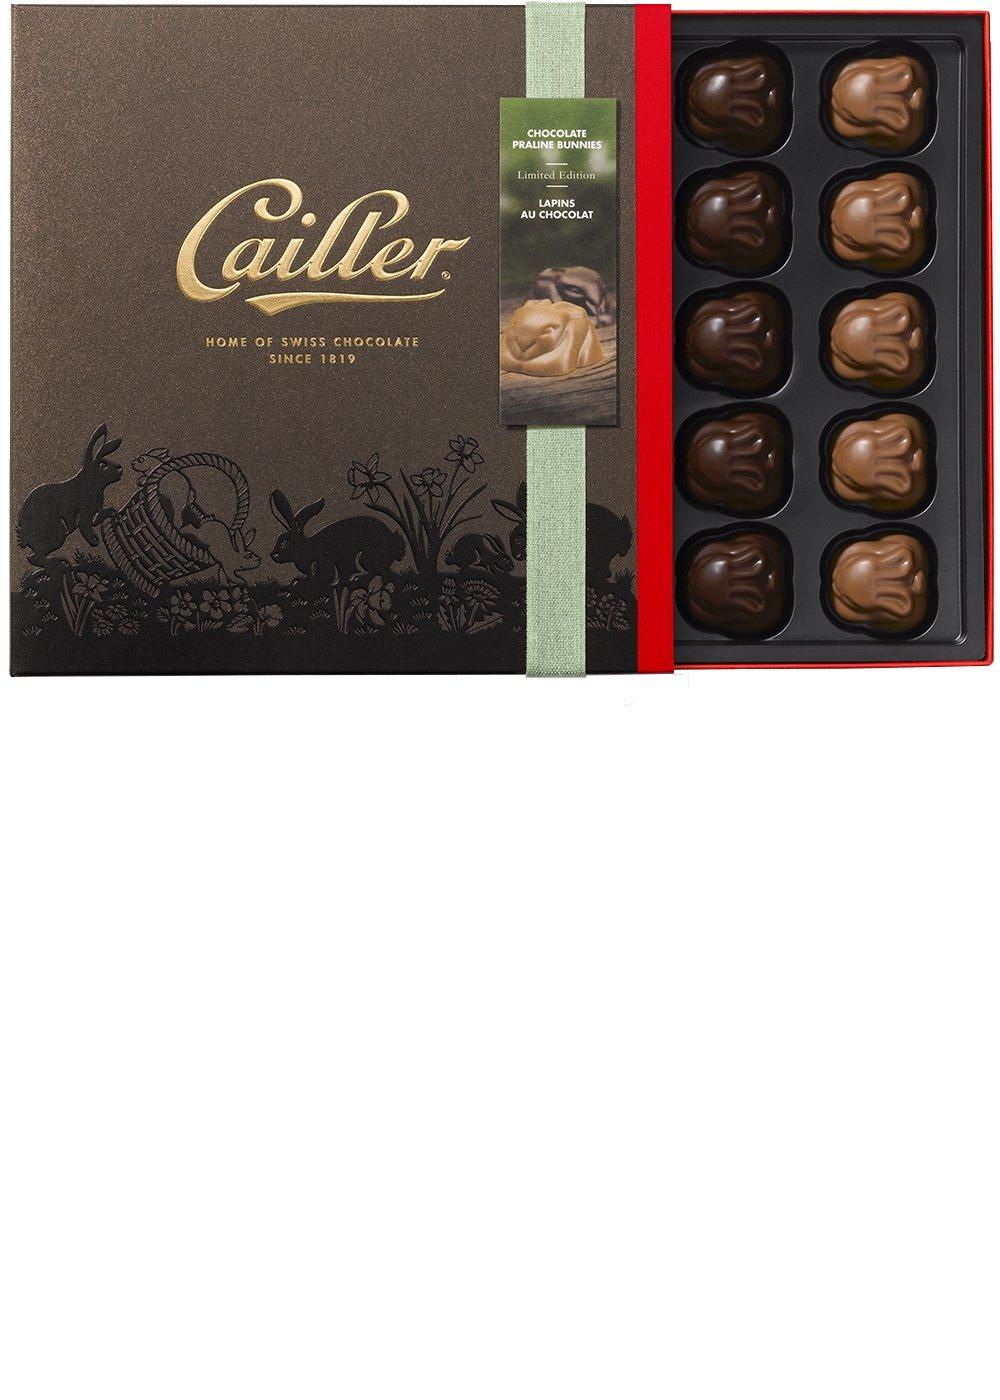 $7.50 CAILLER Praline Bunnies Chocolate Assortment, 4.8 Ounce